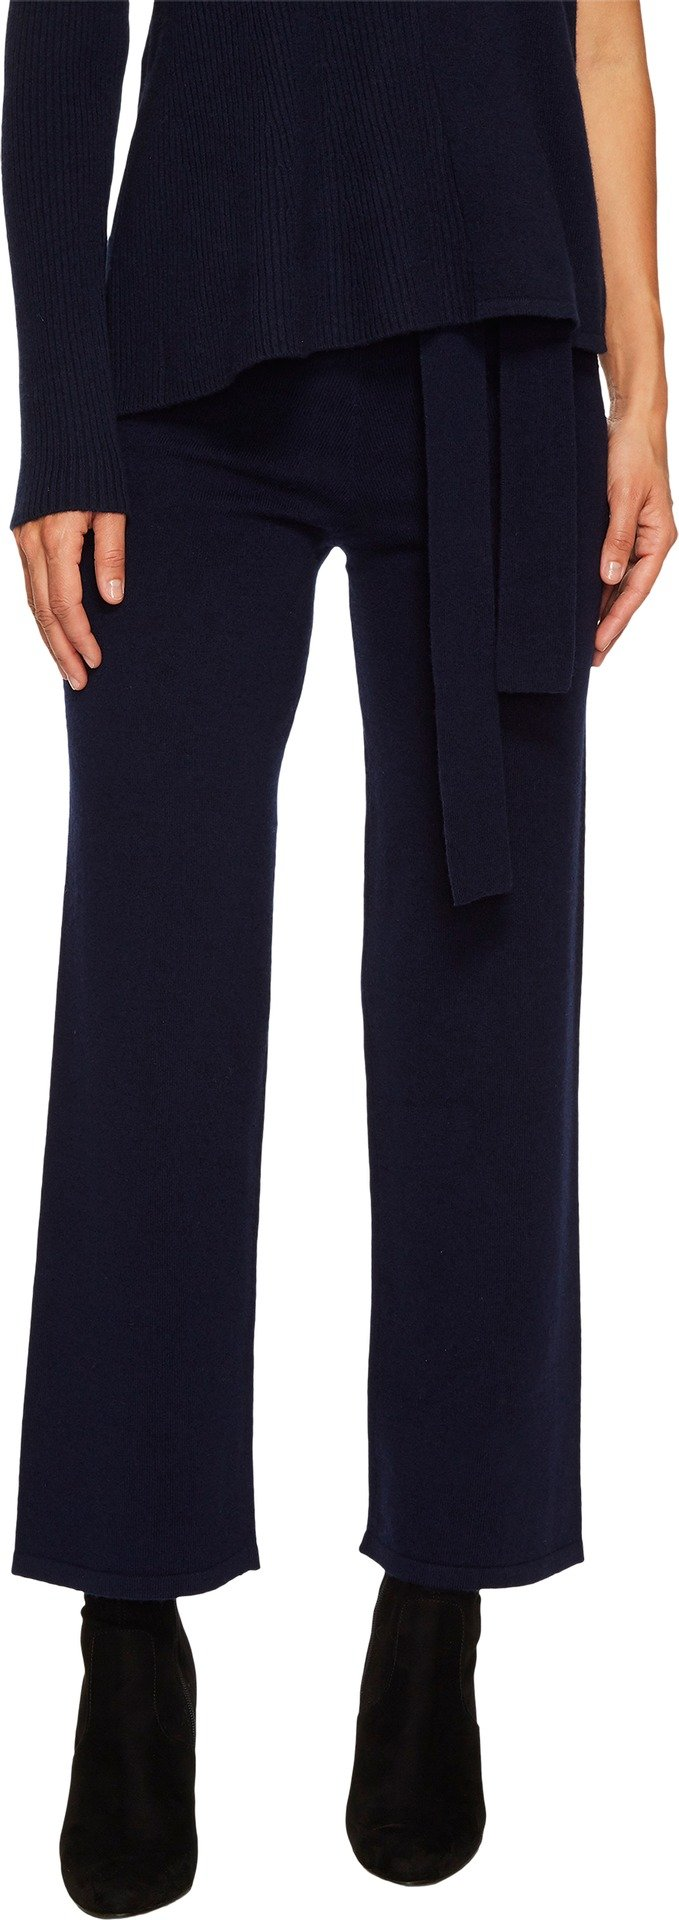 Cashmere In Love Women's Valentin Knit Pants Navy Large